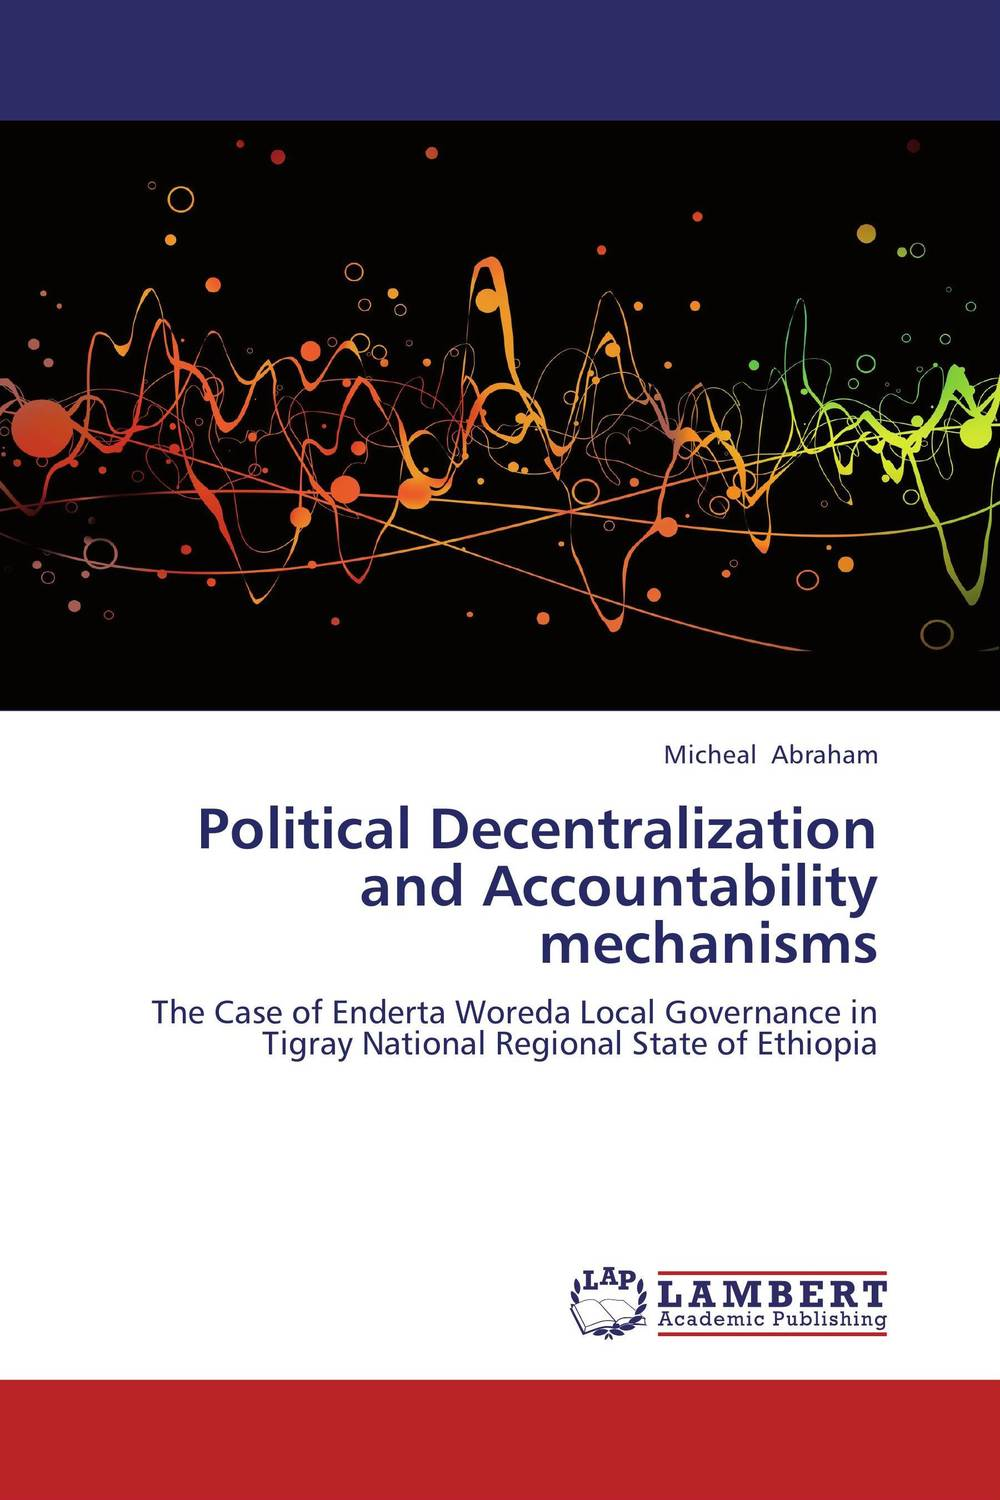 Political Decentralization and Accountability mechanisms presidential nominee will address a gathering